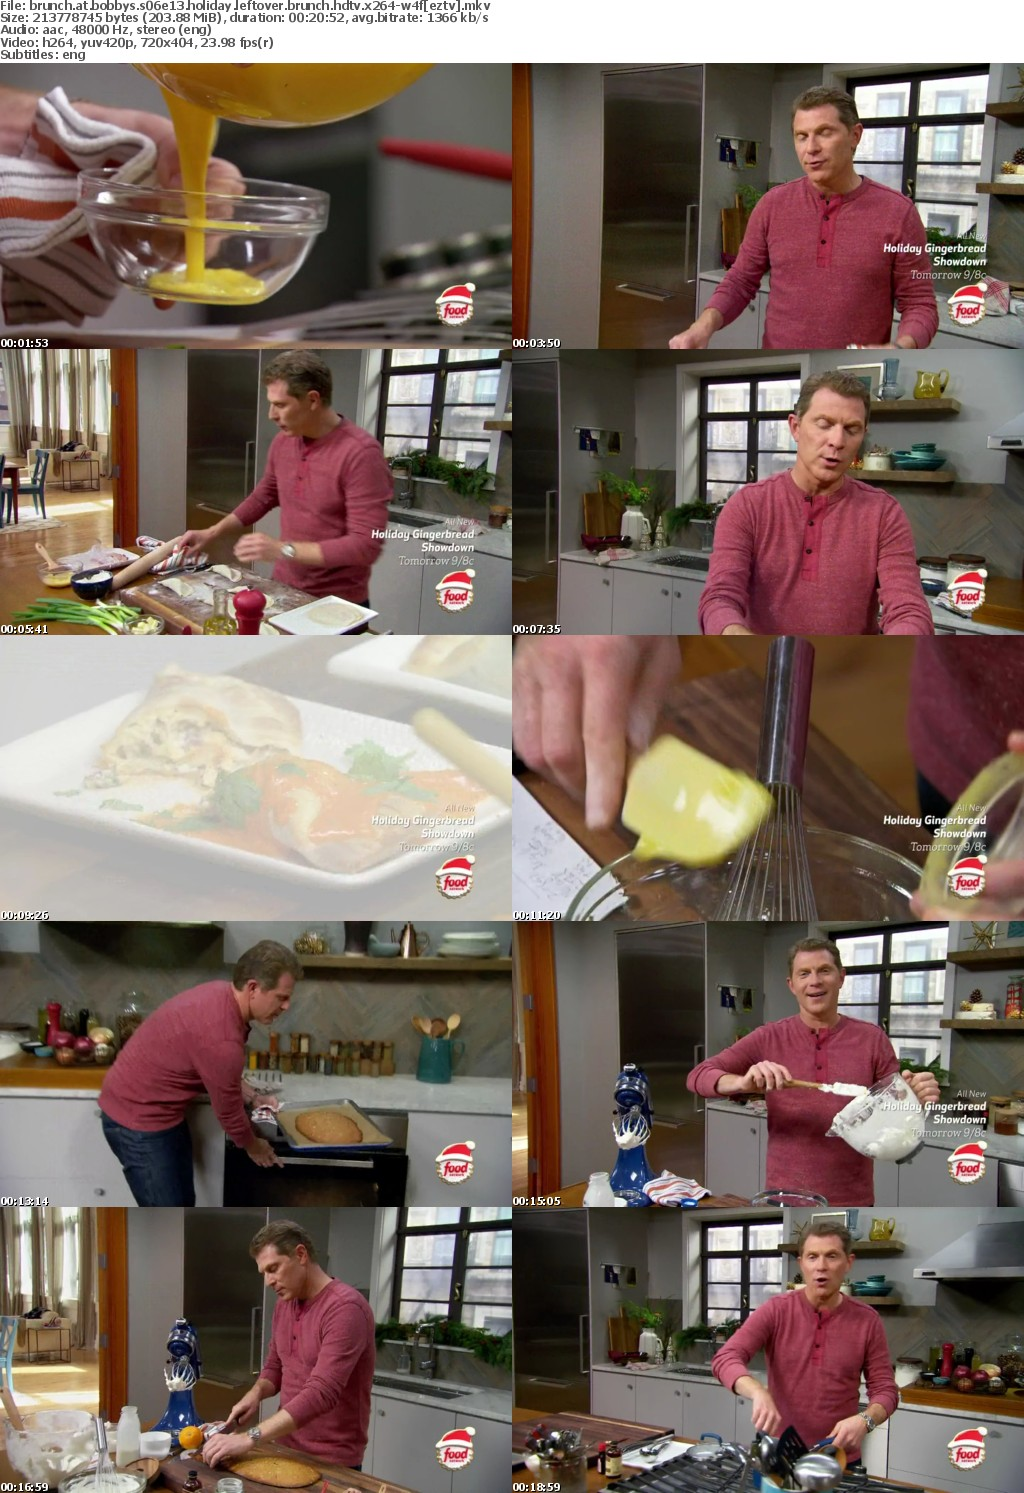 Brunch At Bobbys S06E13 Holiday Leftover Brunch HDTV x264-W4F